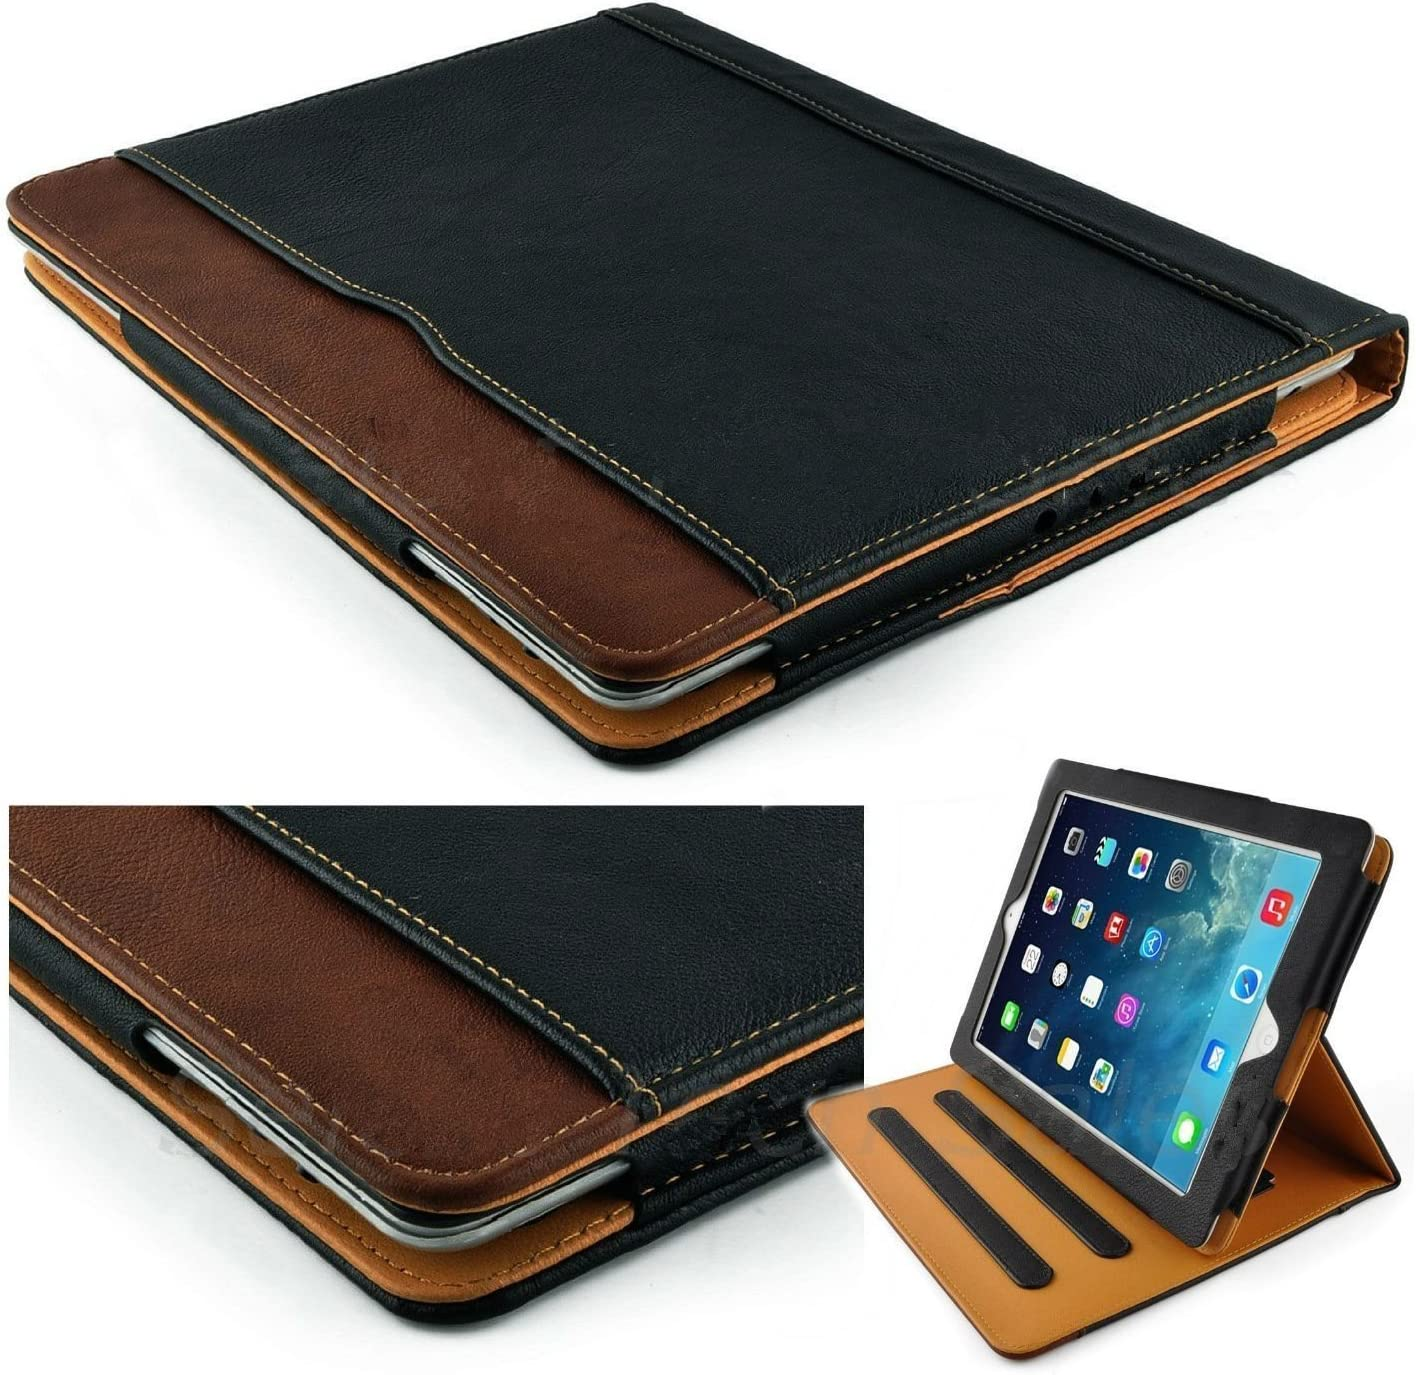 New S-Tech Black and Tan Apple iPad 9.7 5th Generation 2017 / 6th Generation 2018 Model Soft Leather Wallet Smart Cover with Sleep/Wake Feature Flip Case